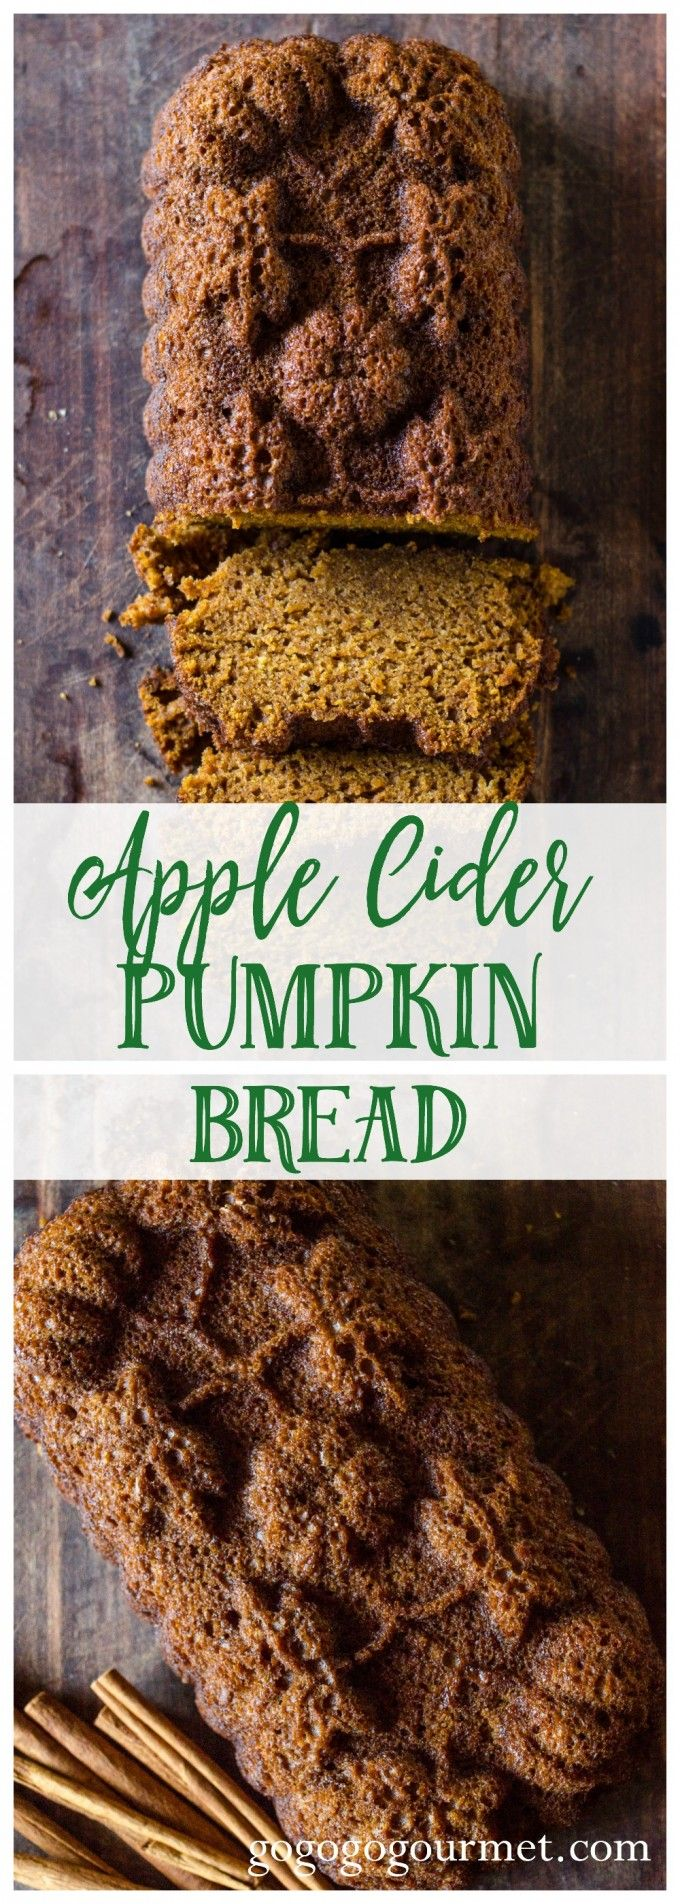 This apple cider pumpkin bread is a fast, easy treat will all the best flavors of fall. One bowl, simple to mix up, and filled with delicious, warm spices. via @gogogogourmet